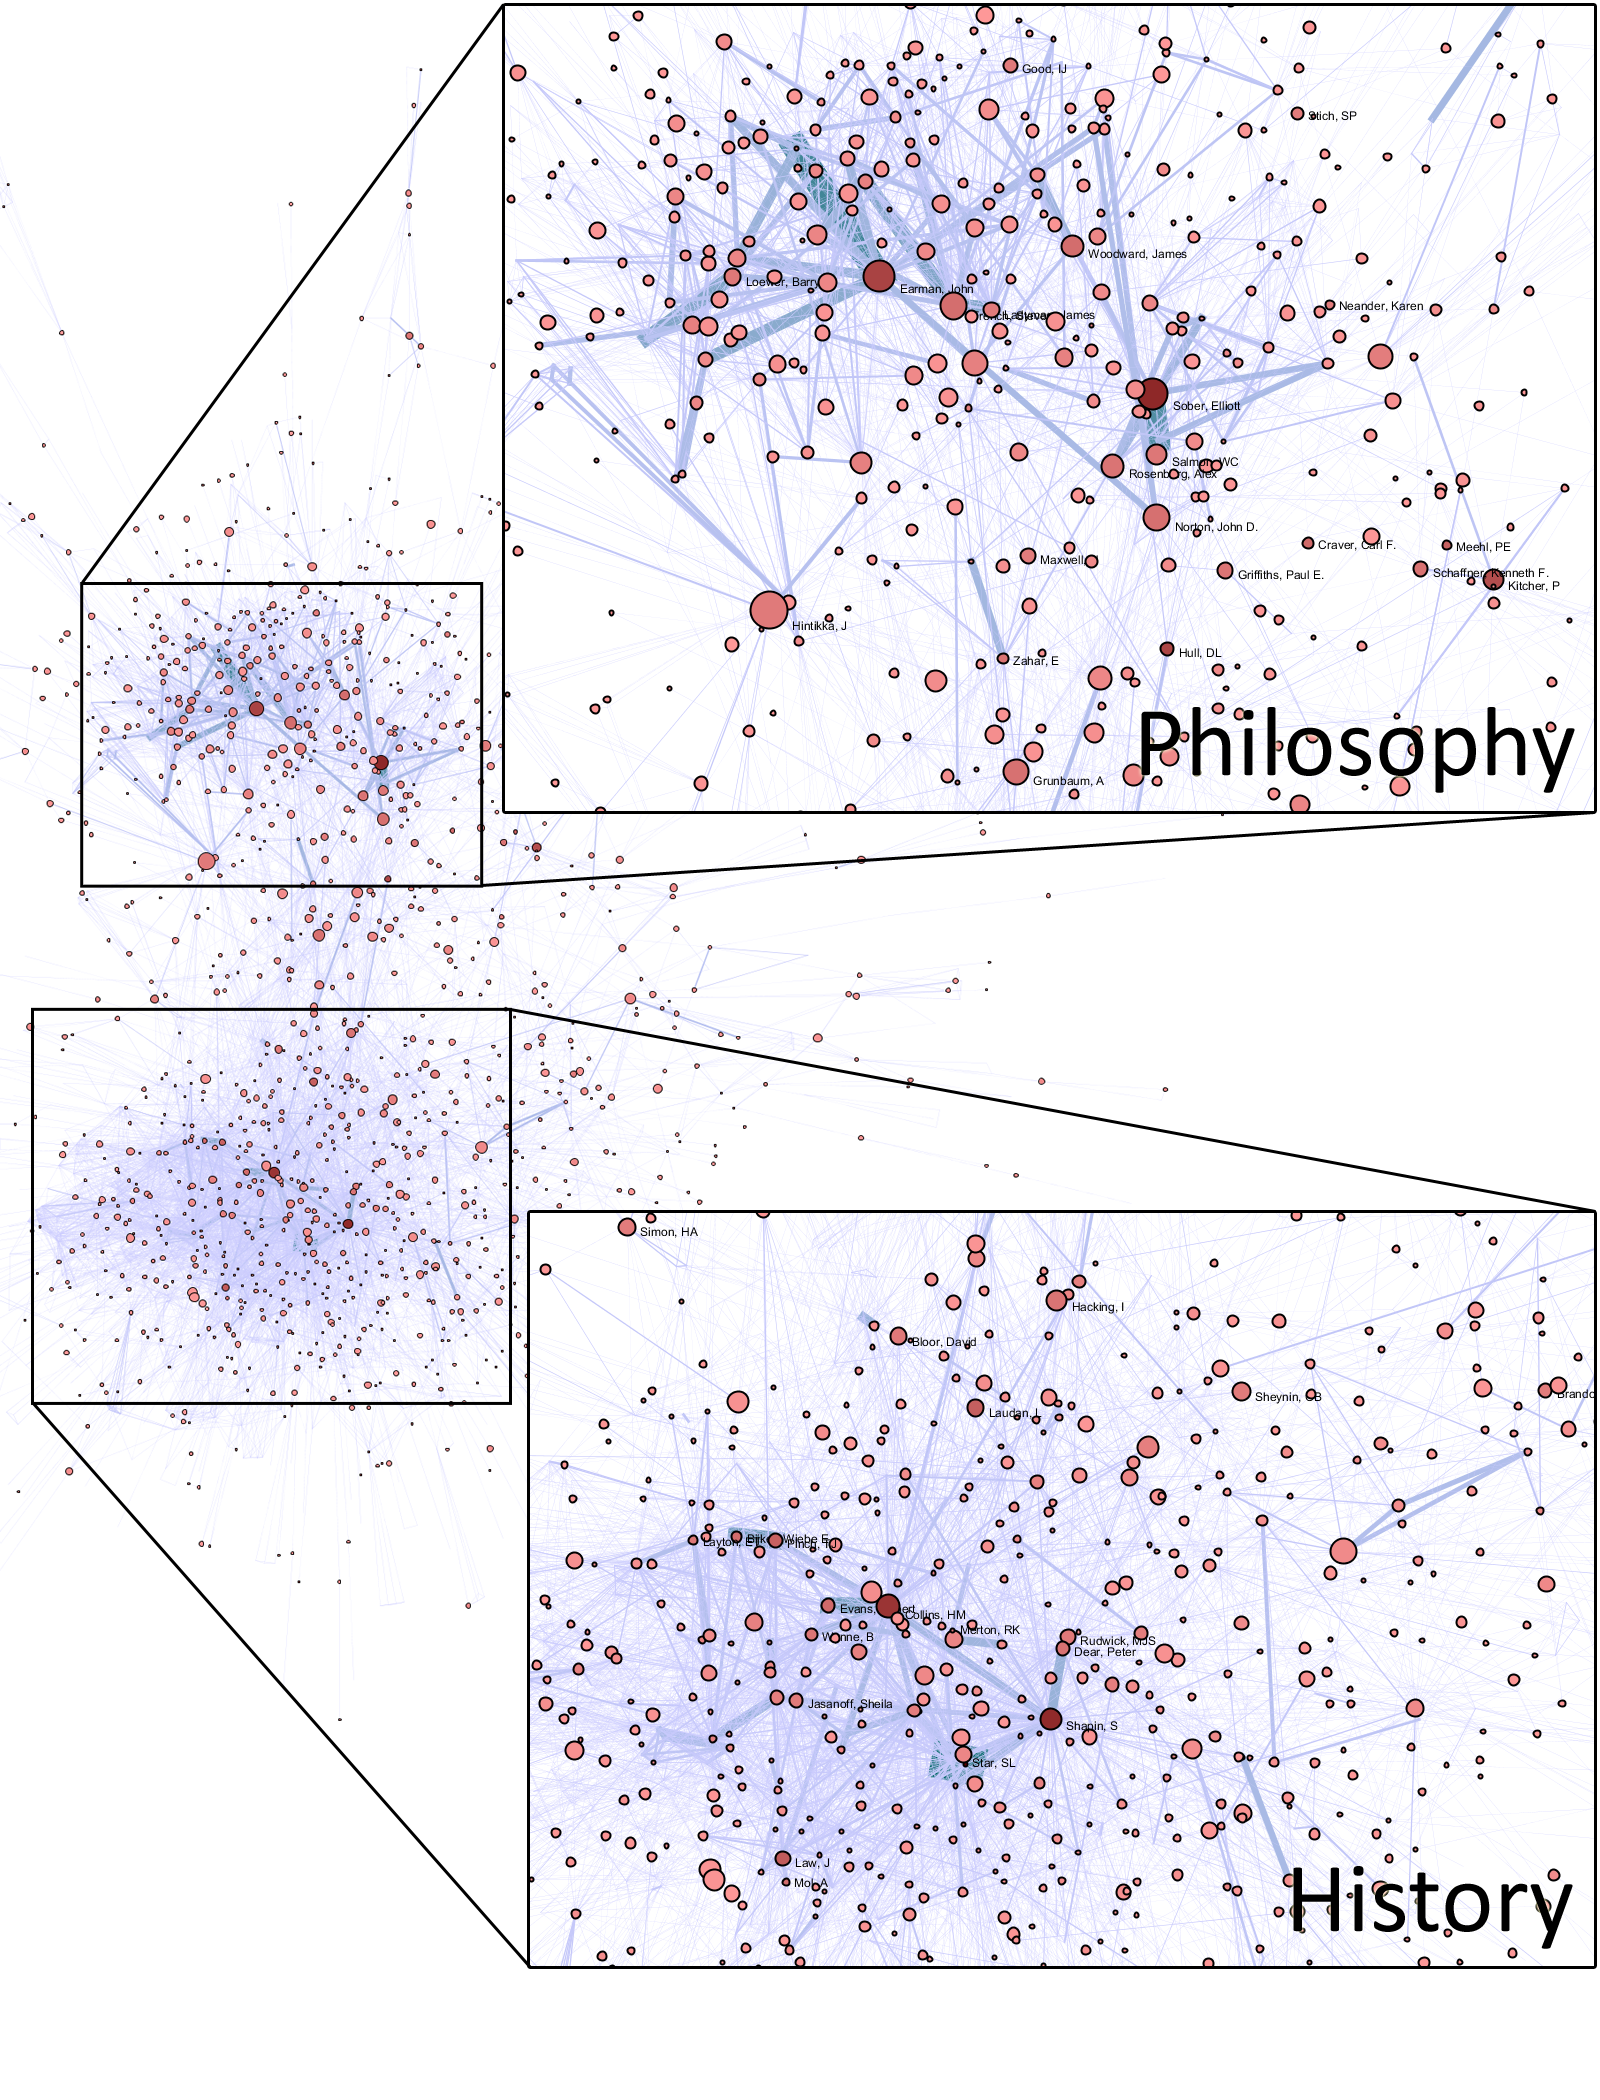 Figure 6: Author co-citation network of 15 history & philosophy of science journals. Two authors are connected if they are cited together in some article, and connected more strongly if they are cited together frequently. Click to enlarge. [via me!]